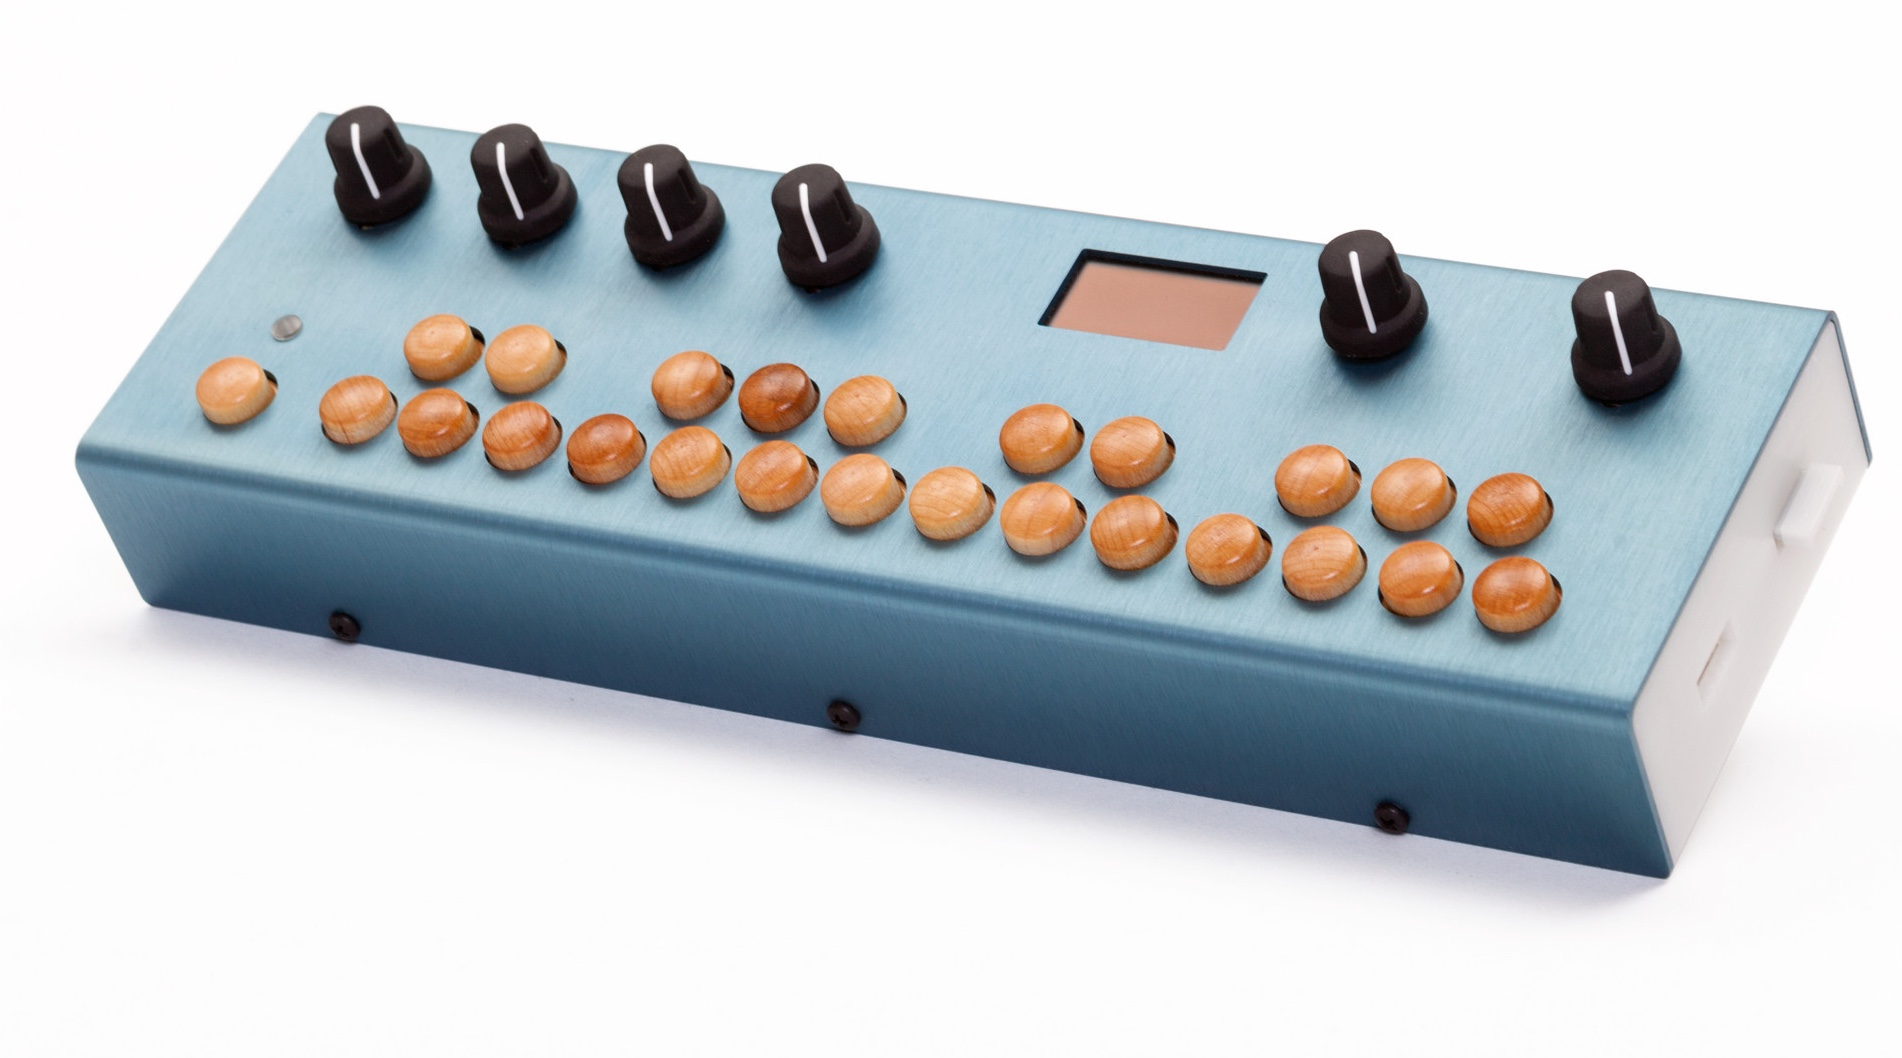 Critter & Guitari's new music box turns into anything, with